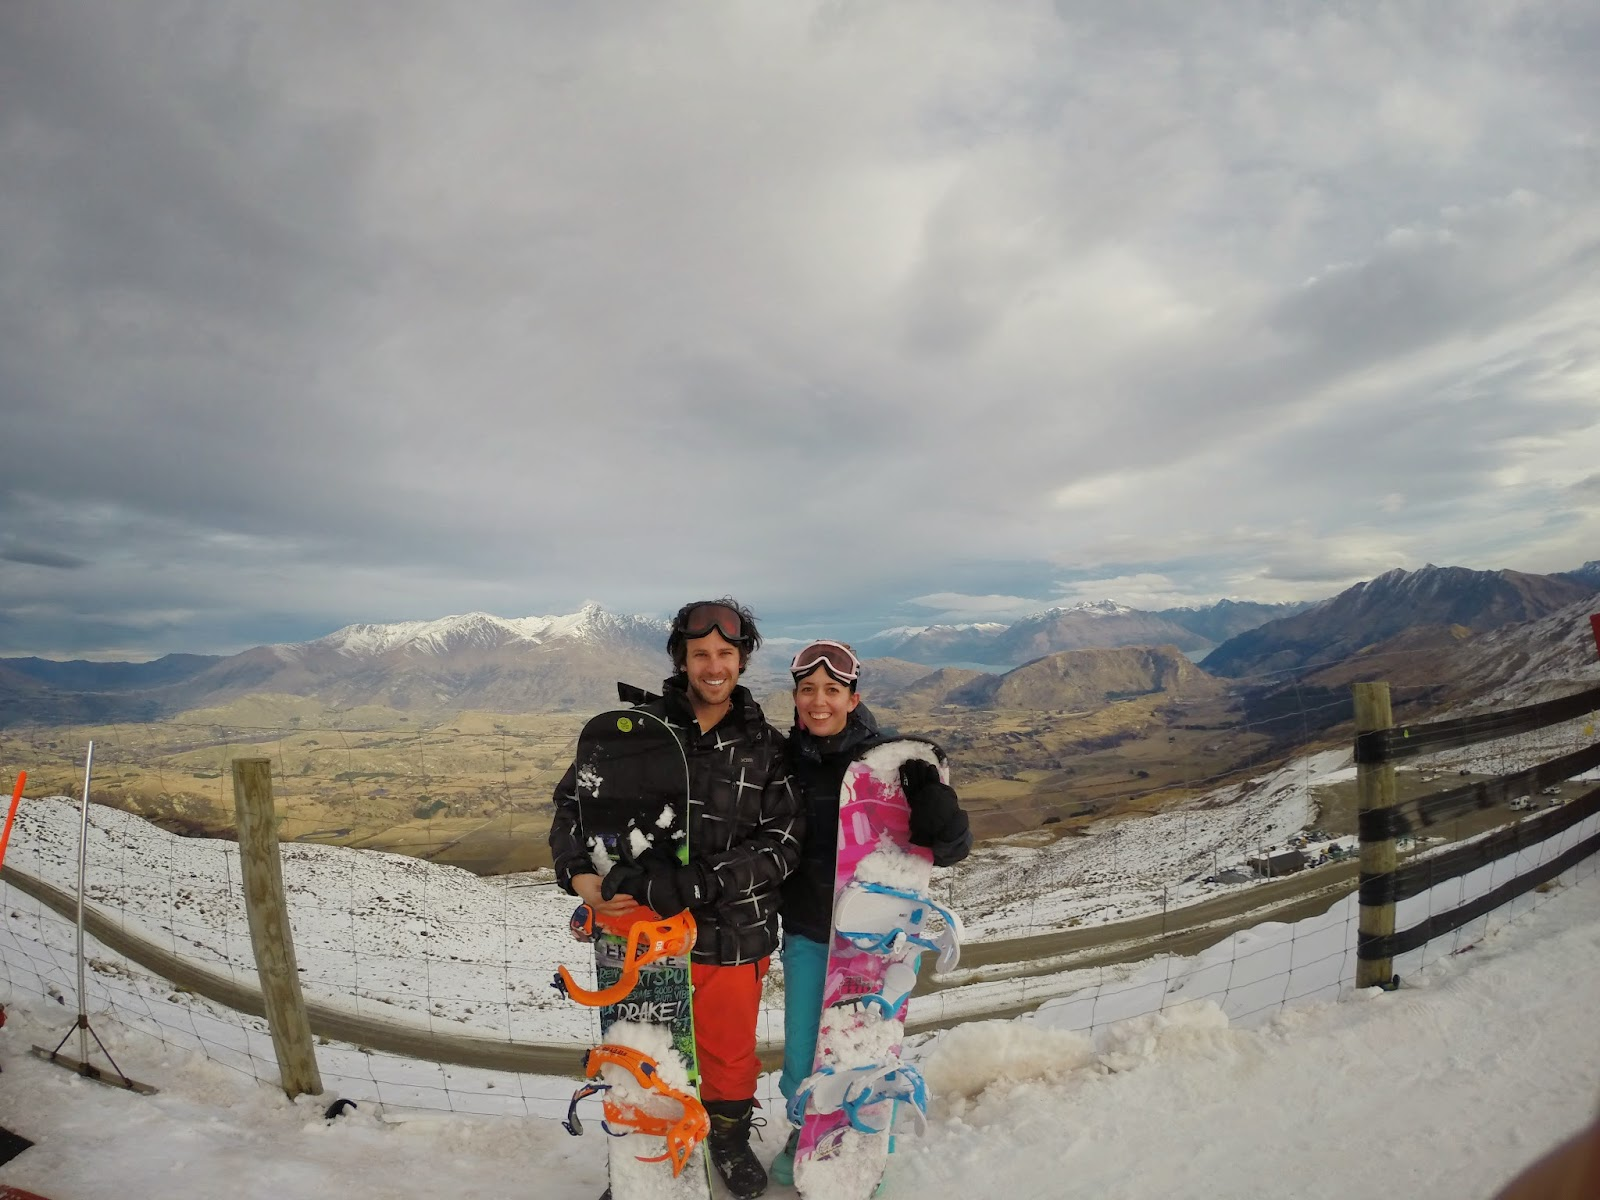 Coronet Peak snowboard session / fashion statement